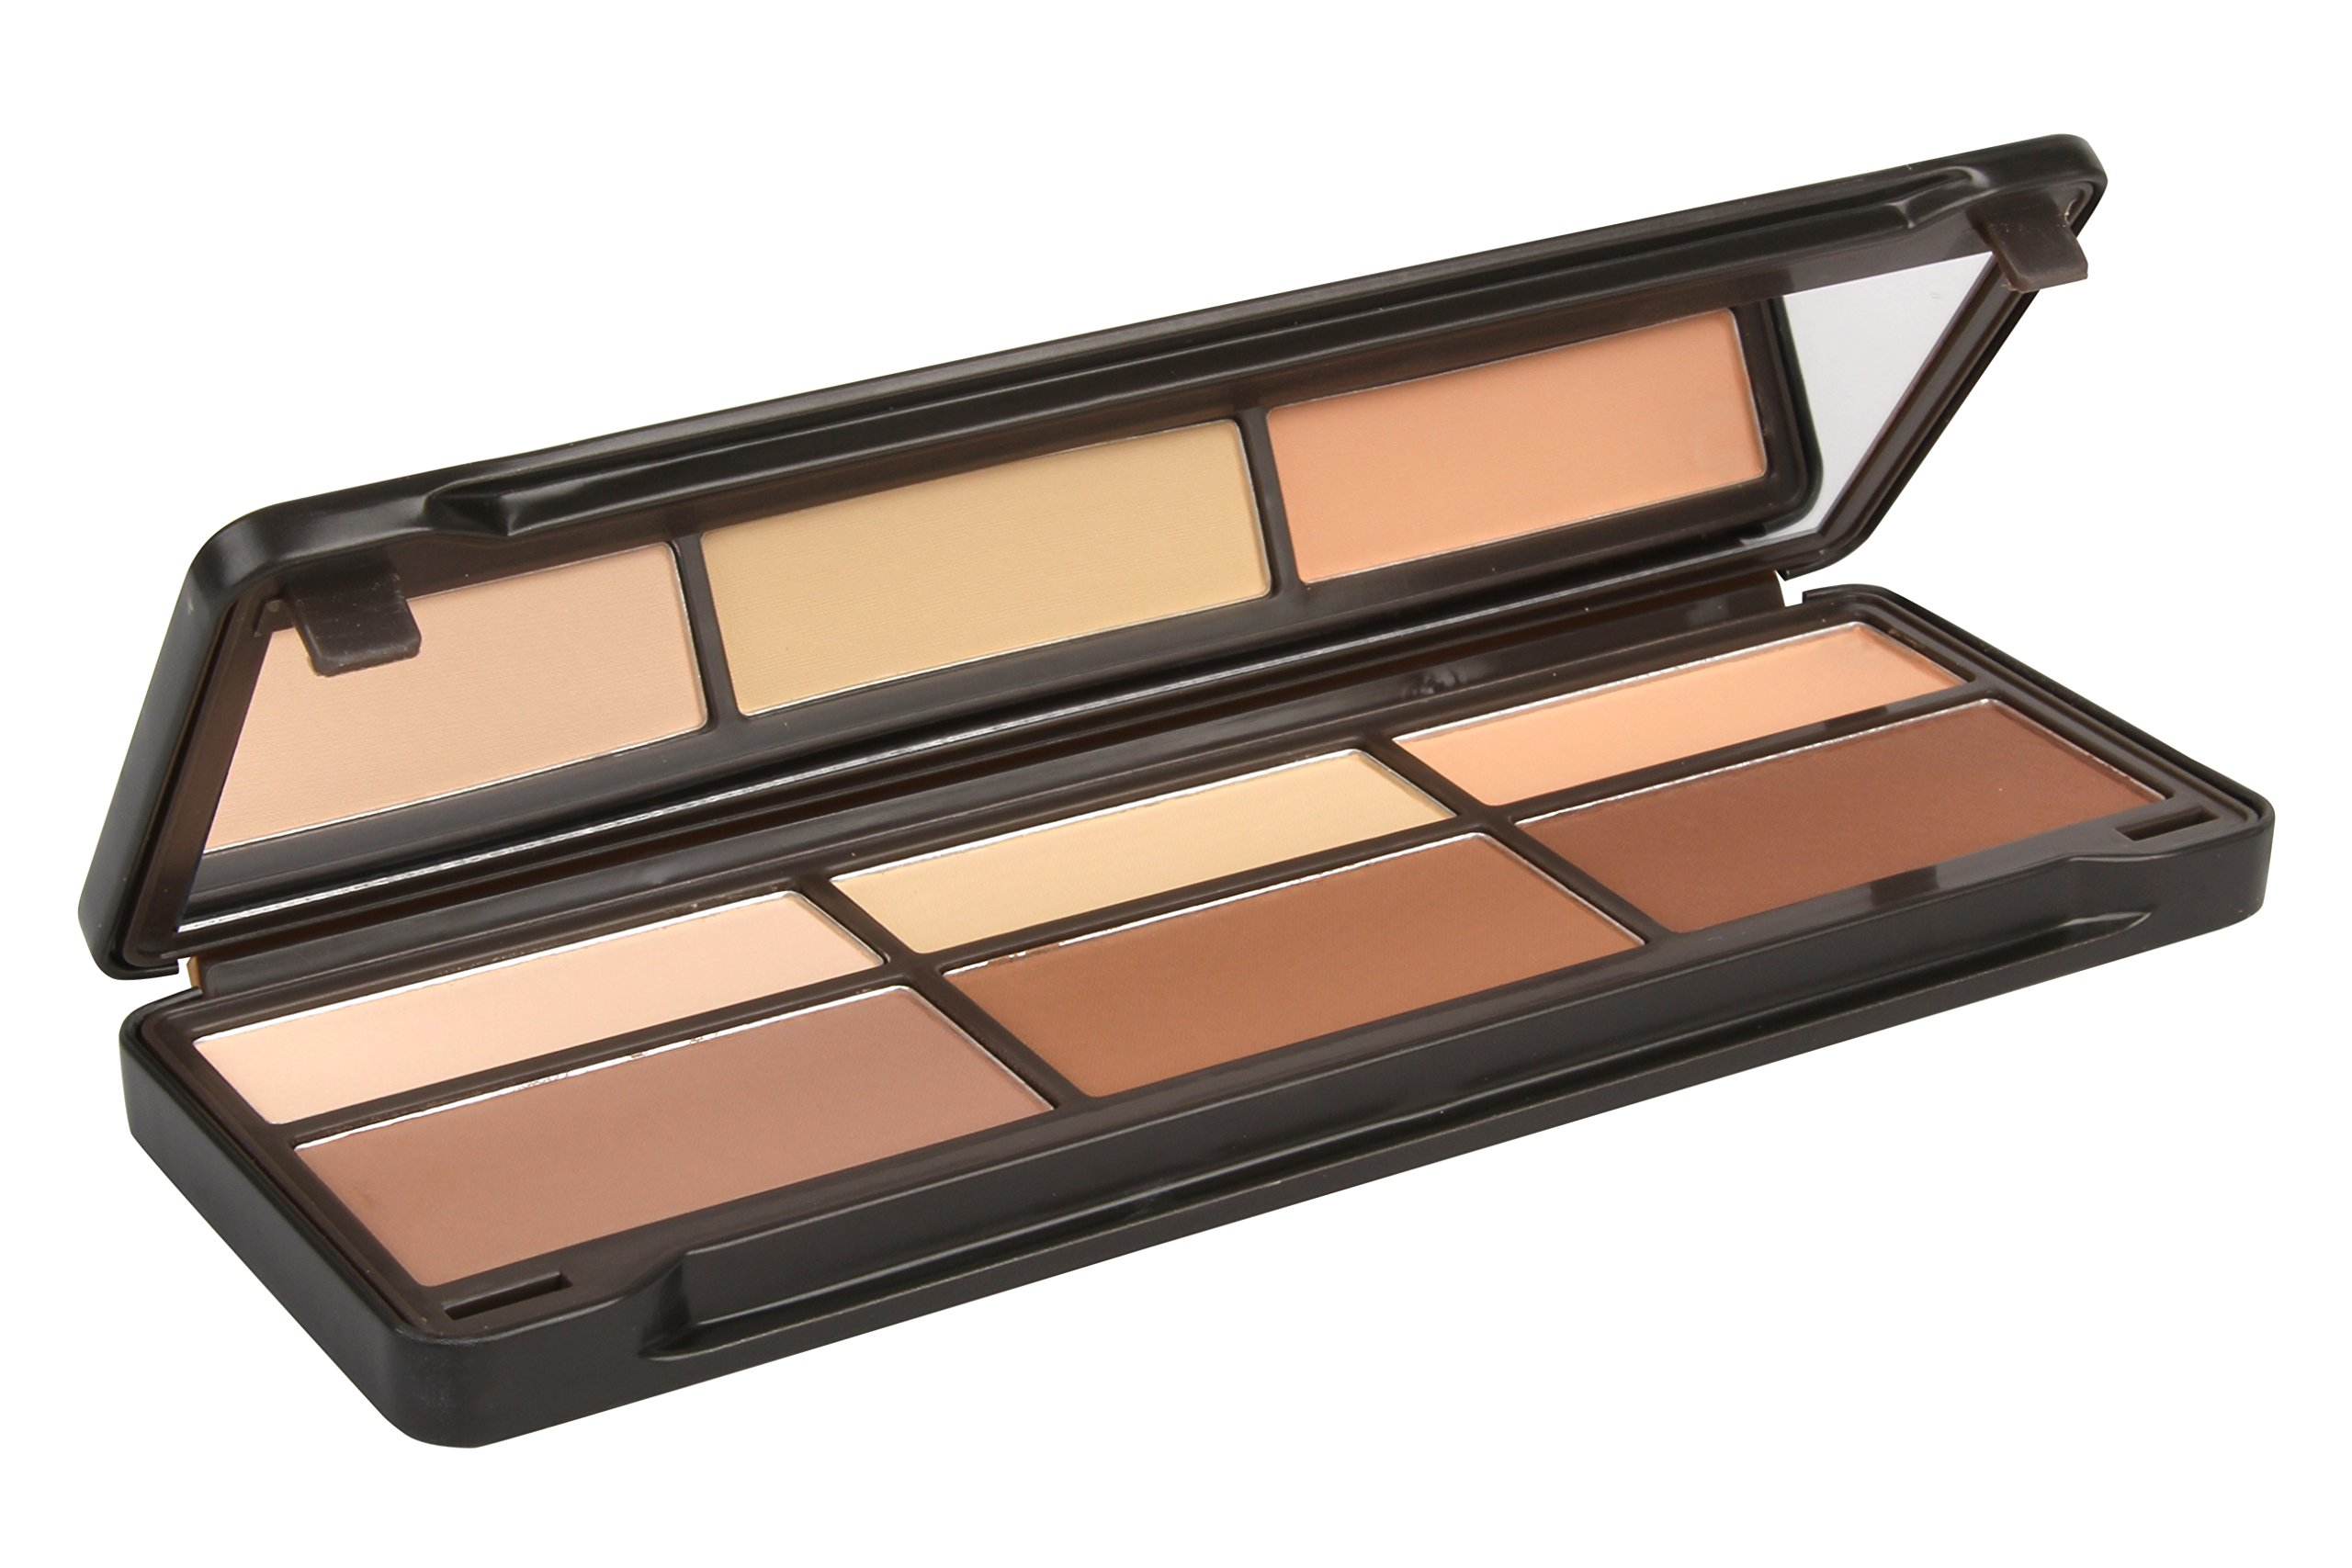 BYS Contour Palette (3x Contouring Powder, 3x Highlighting Powder) by BYS (Image #4)